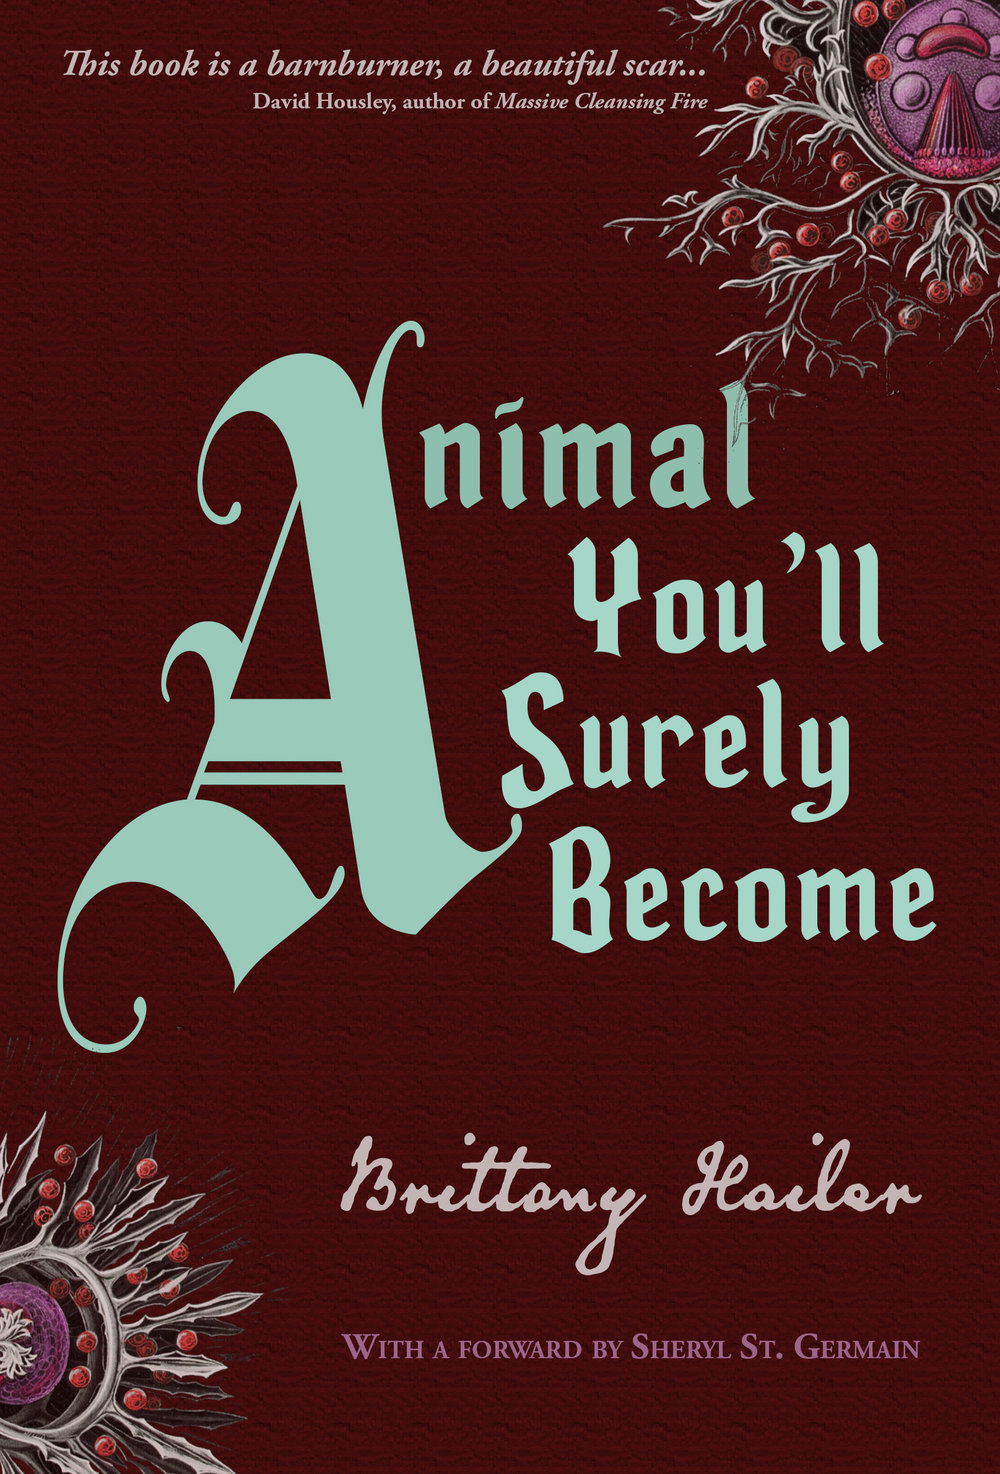 Animal You'll Surely Become: Extended Paperback Edition memoir and poetry by Brittany Hailer - February 5th, 2019A daughter's book, a book that exposes the unwitting hurt parents can inflict on their children, it makes sense that many pieces here are inspired by fairytales. Imagine Red Riding Hood, a woman in her late twenties or early thirties now, or Gretel, also grown. This is the just kind of tale they would tell, these daughters with absent mothers and fathers who have experienced loss and betrayal. Just to set the record straight. Just to tell it like it really was, to make sure we hear their voice, their side of the story.